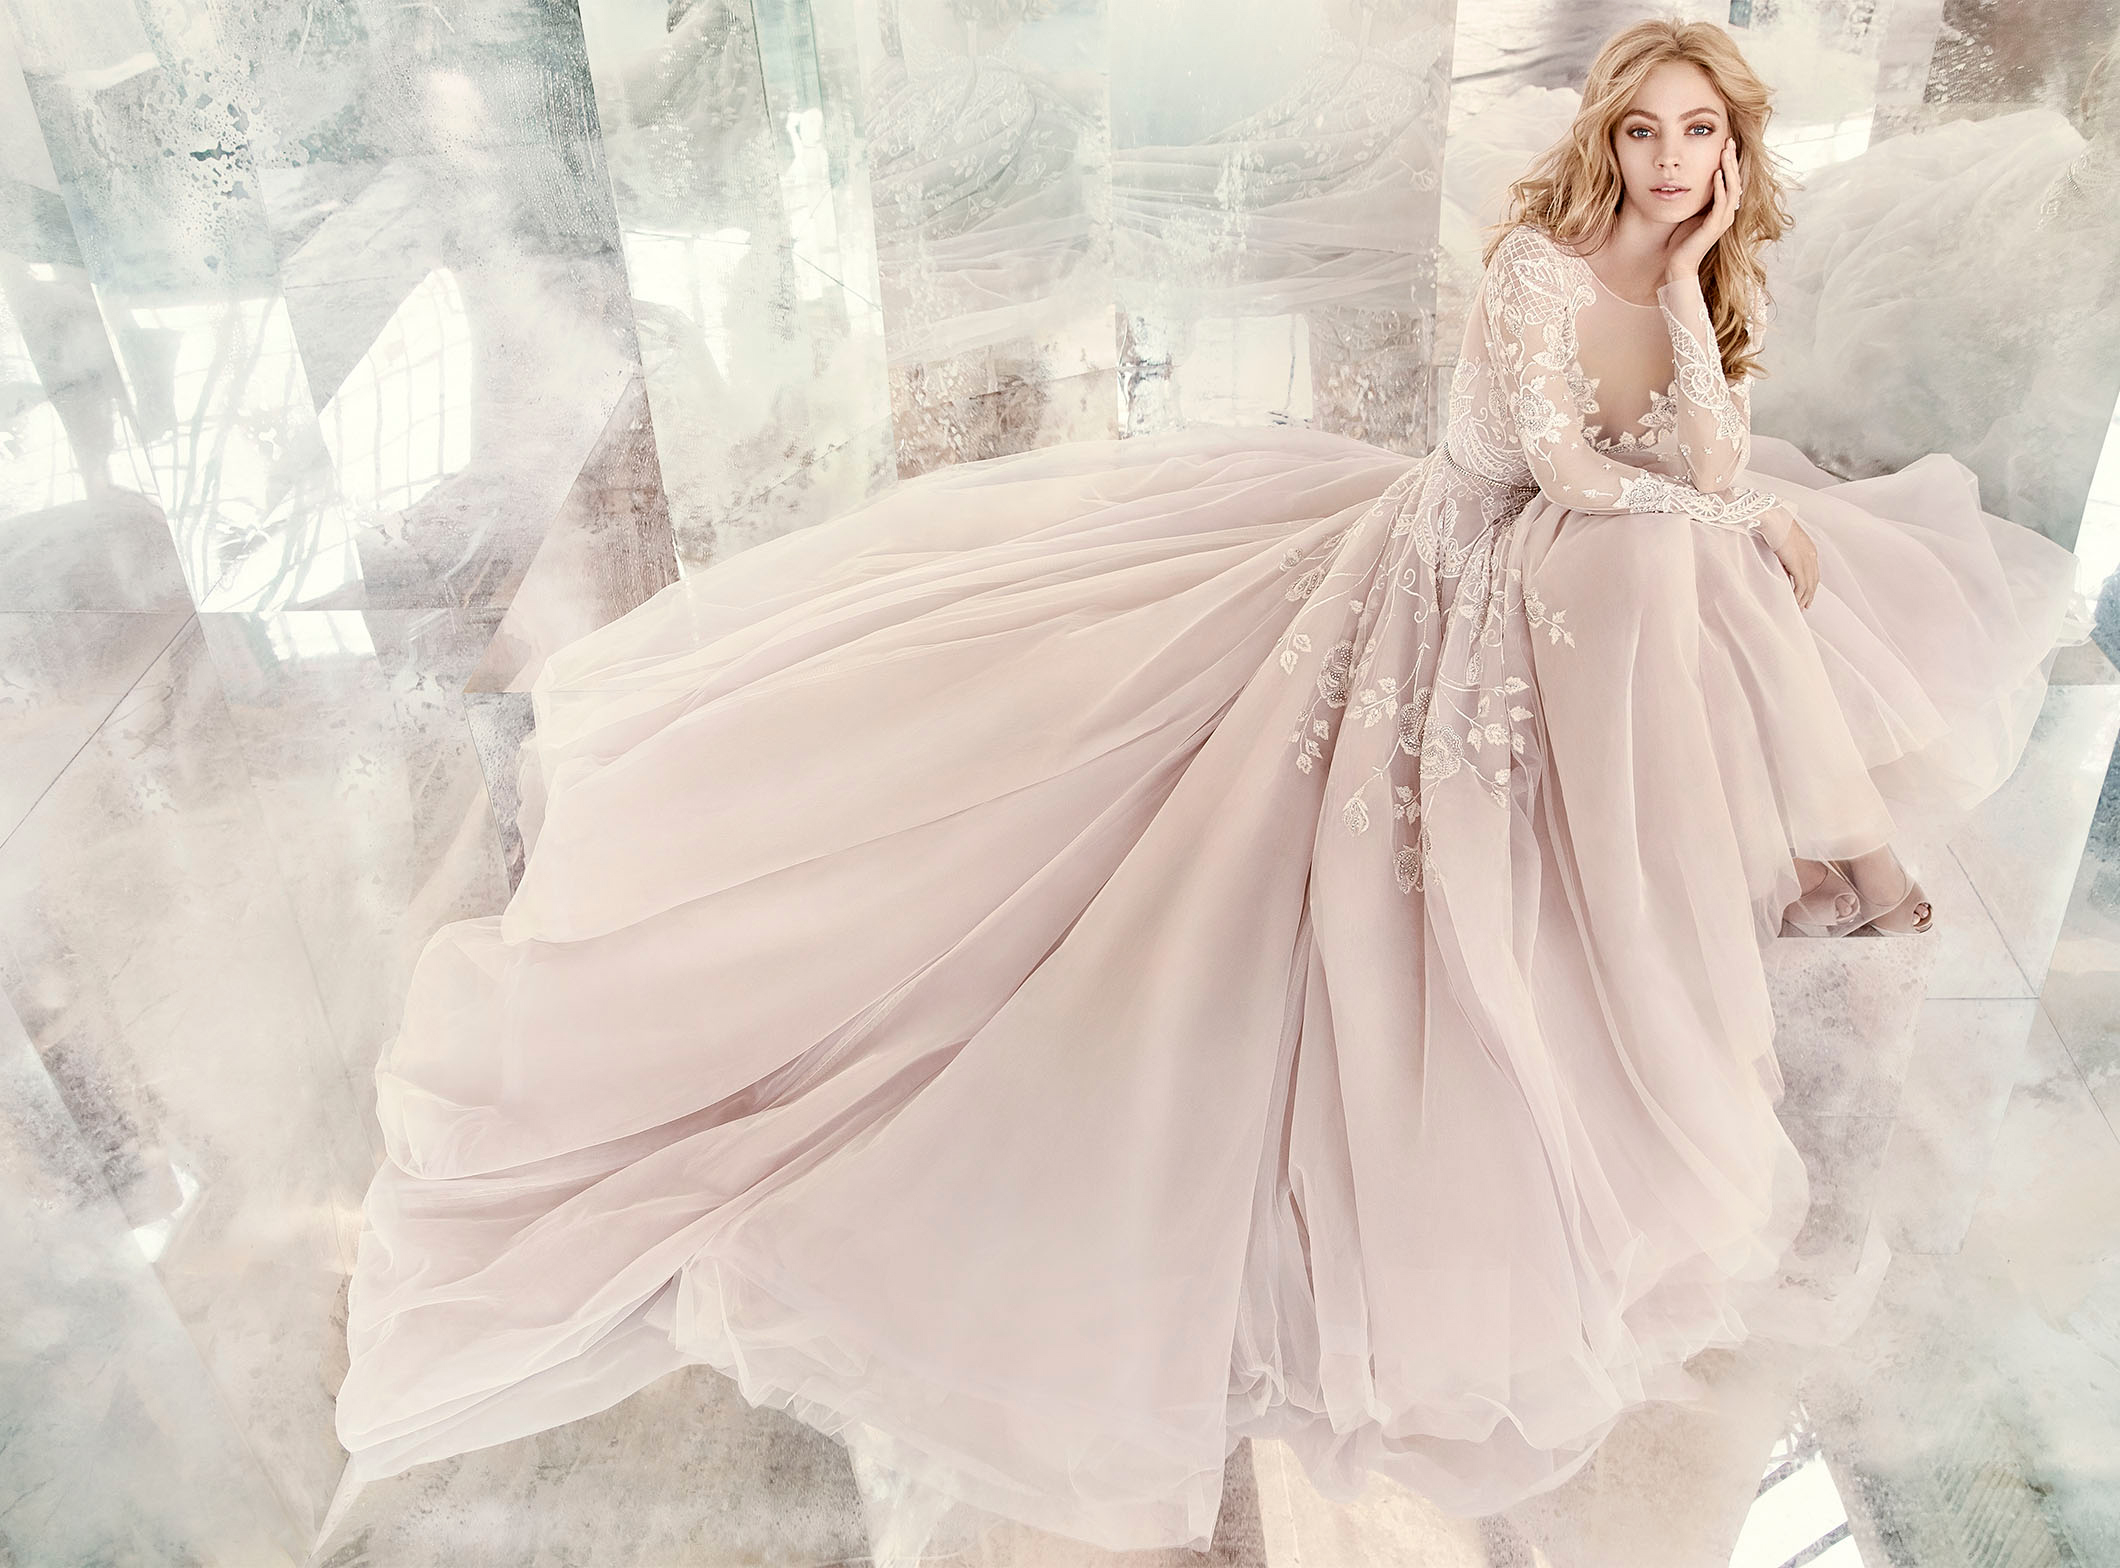 inexpensive wedding dresses dallas texas wedding dresses dallas Dallas Texas Weddingdresses mogulus Hp Hayley Stardust Celebrations